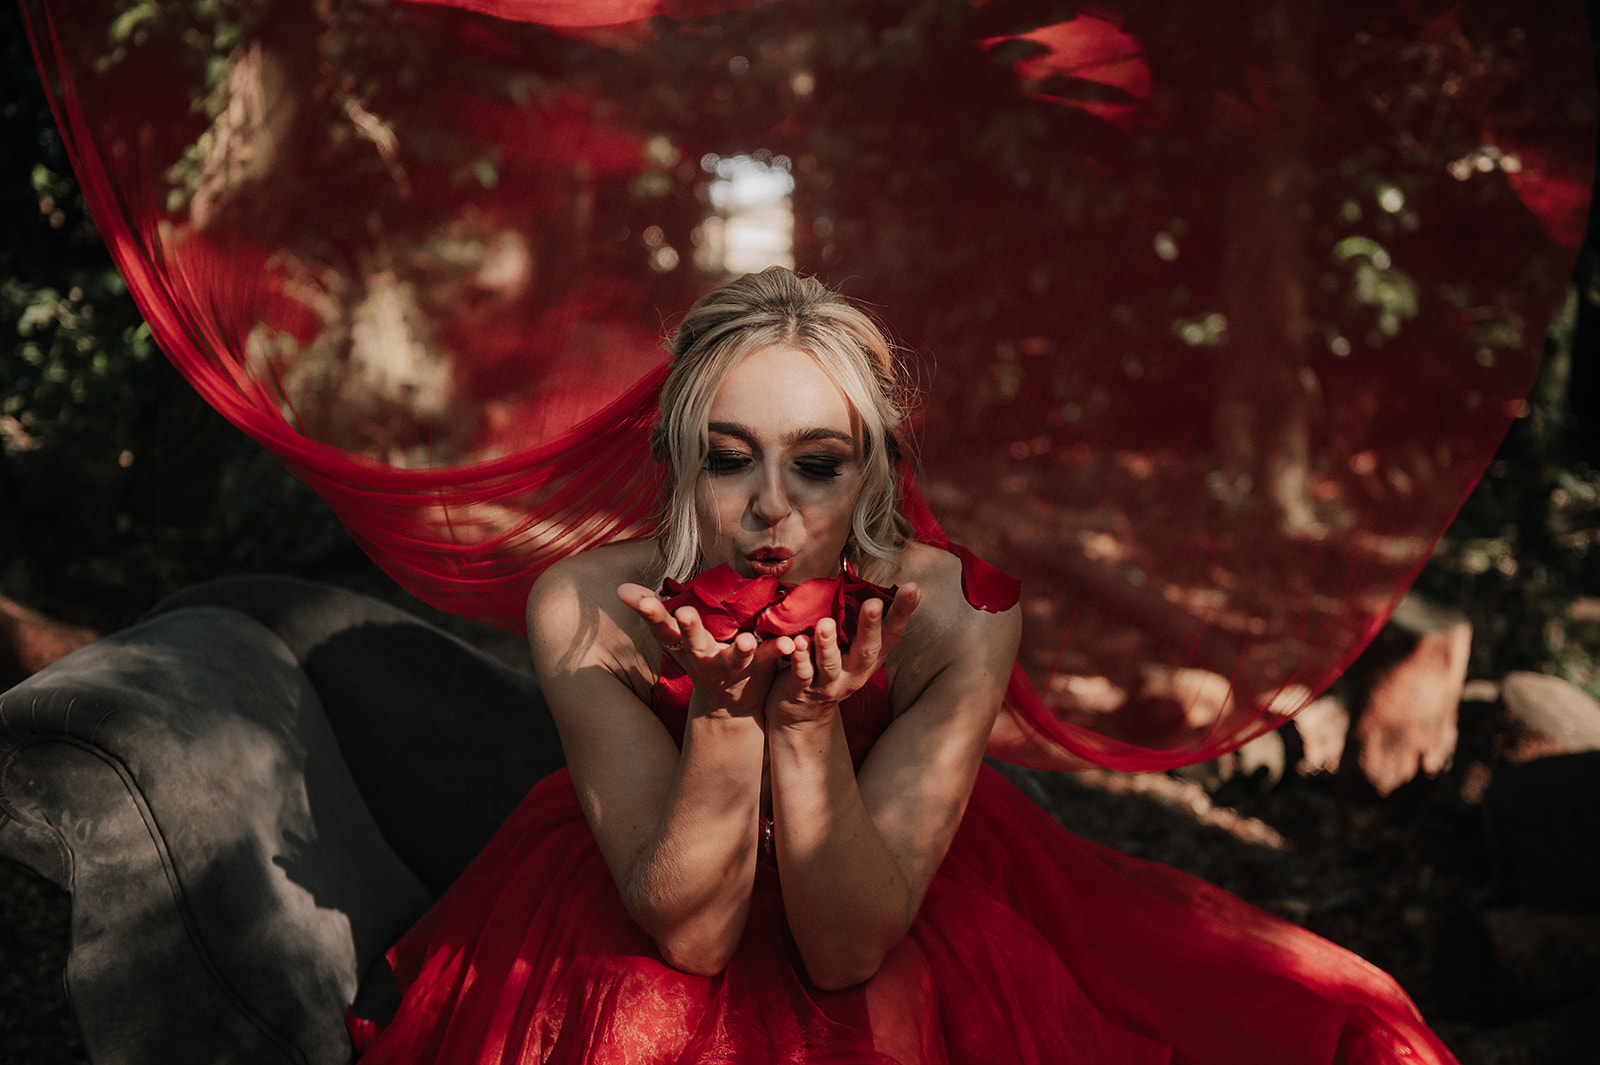 red wedding dress & red veil - bride blowing rose petals - unique wedding dress - red veil